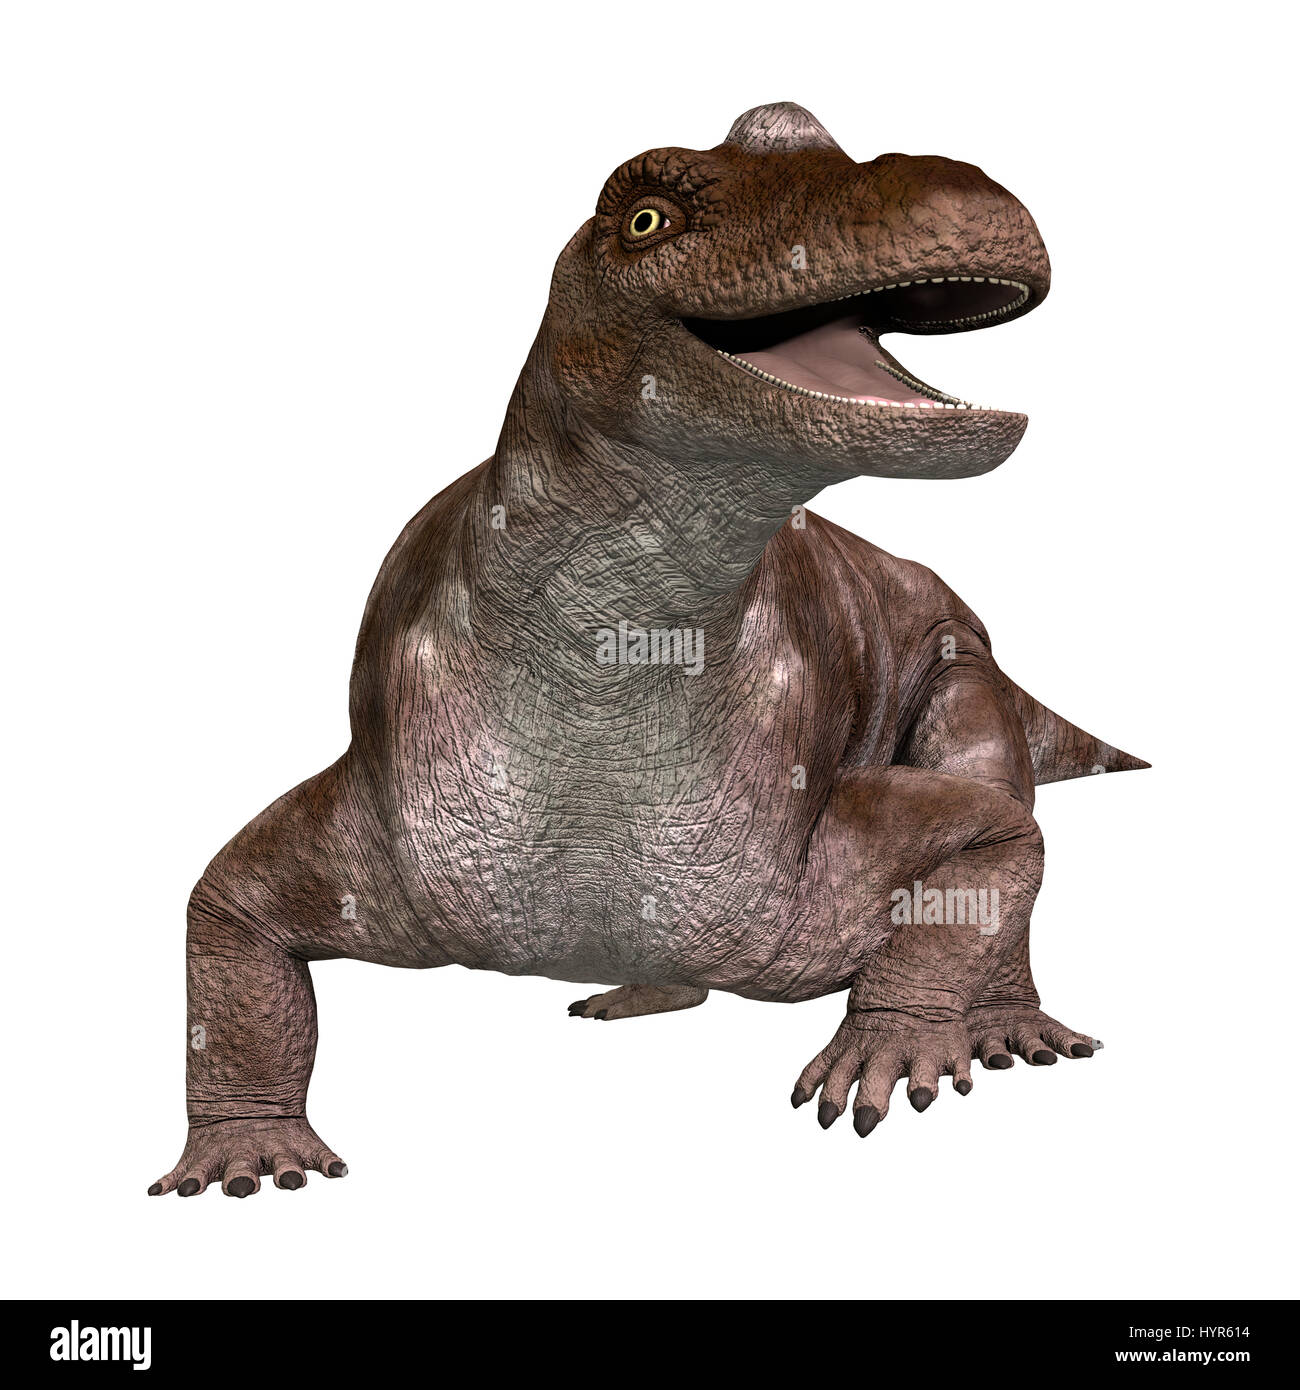 3D rendering of a dinosaur keratocephalus isolated on white background Stock Photo